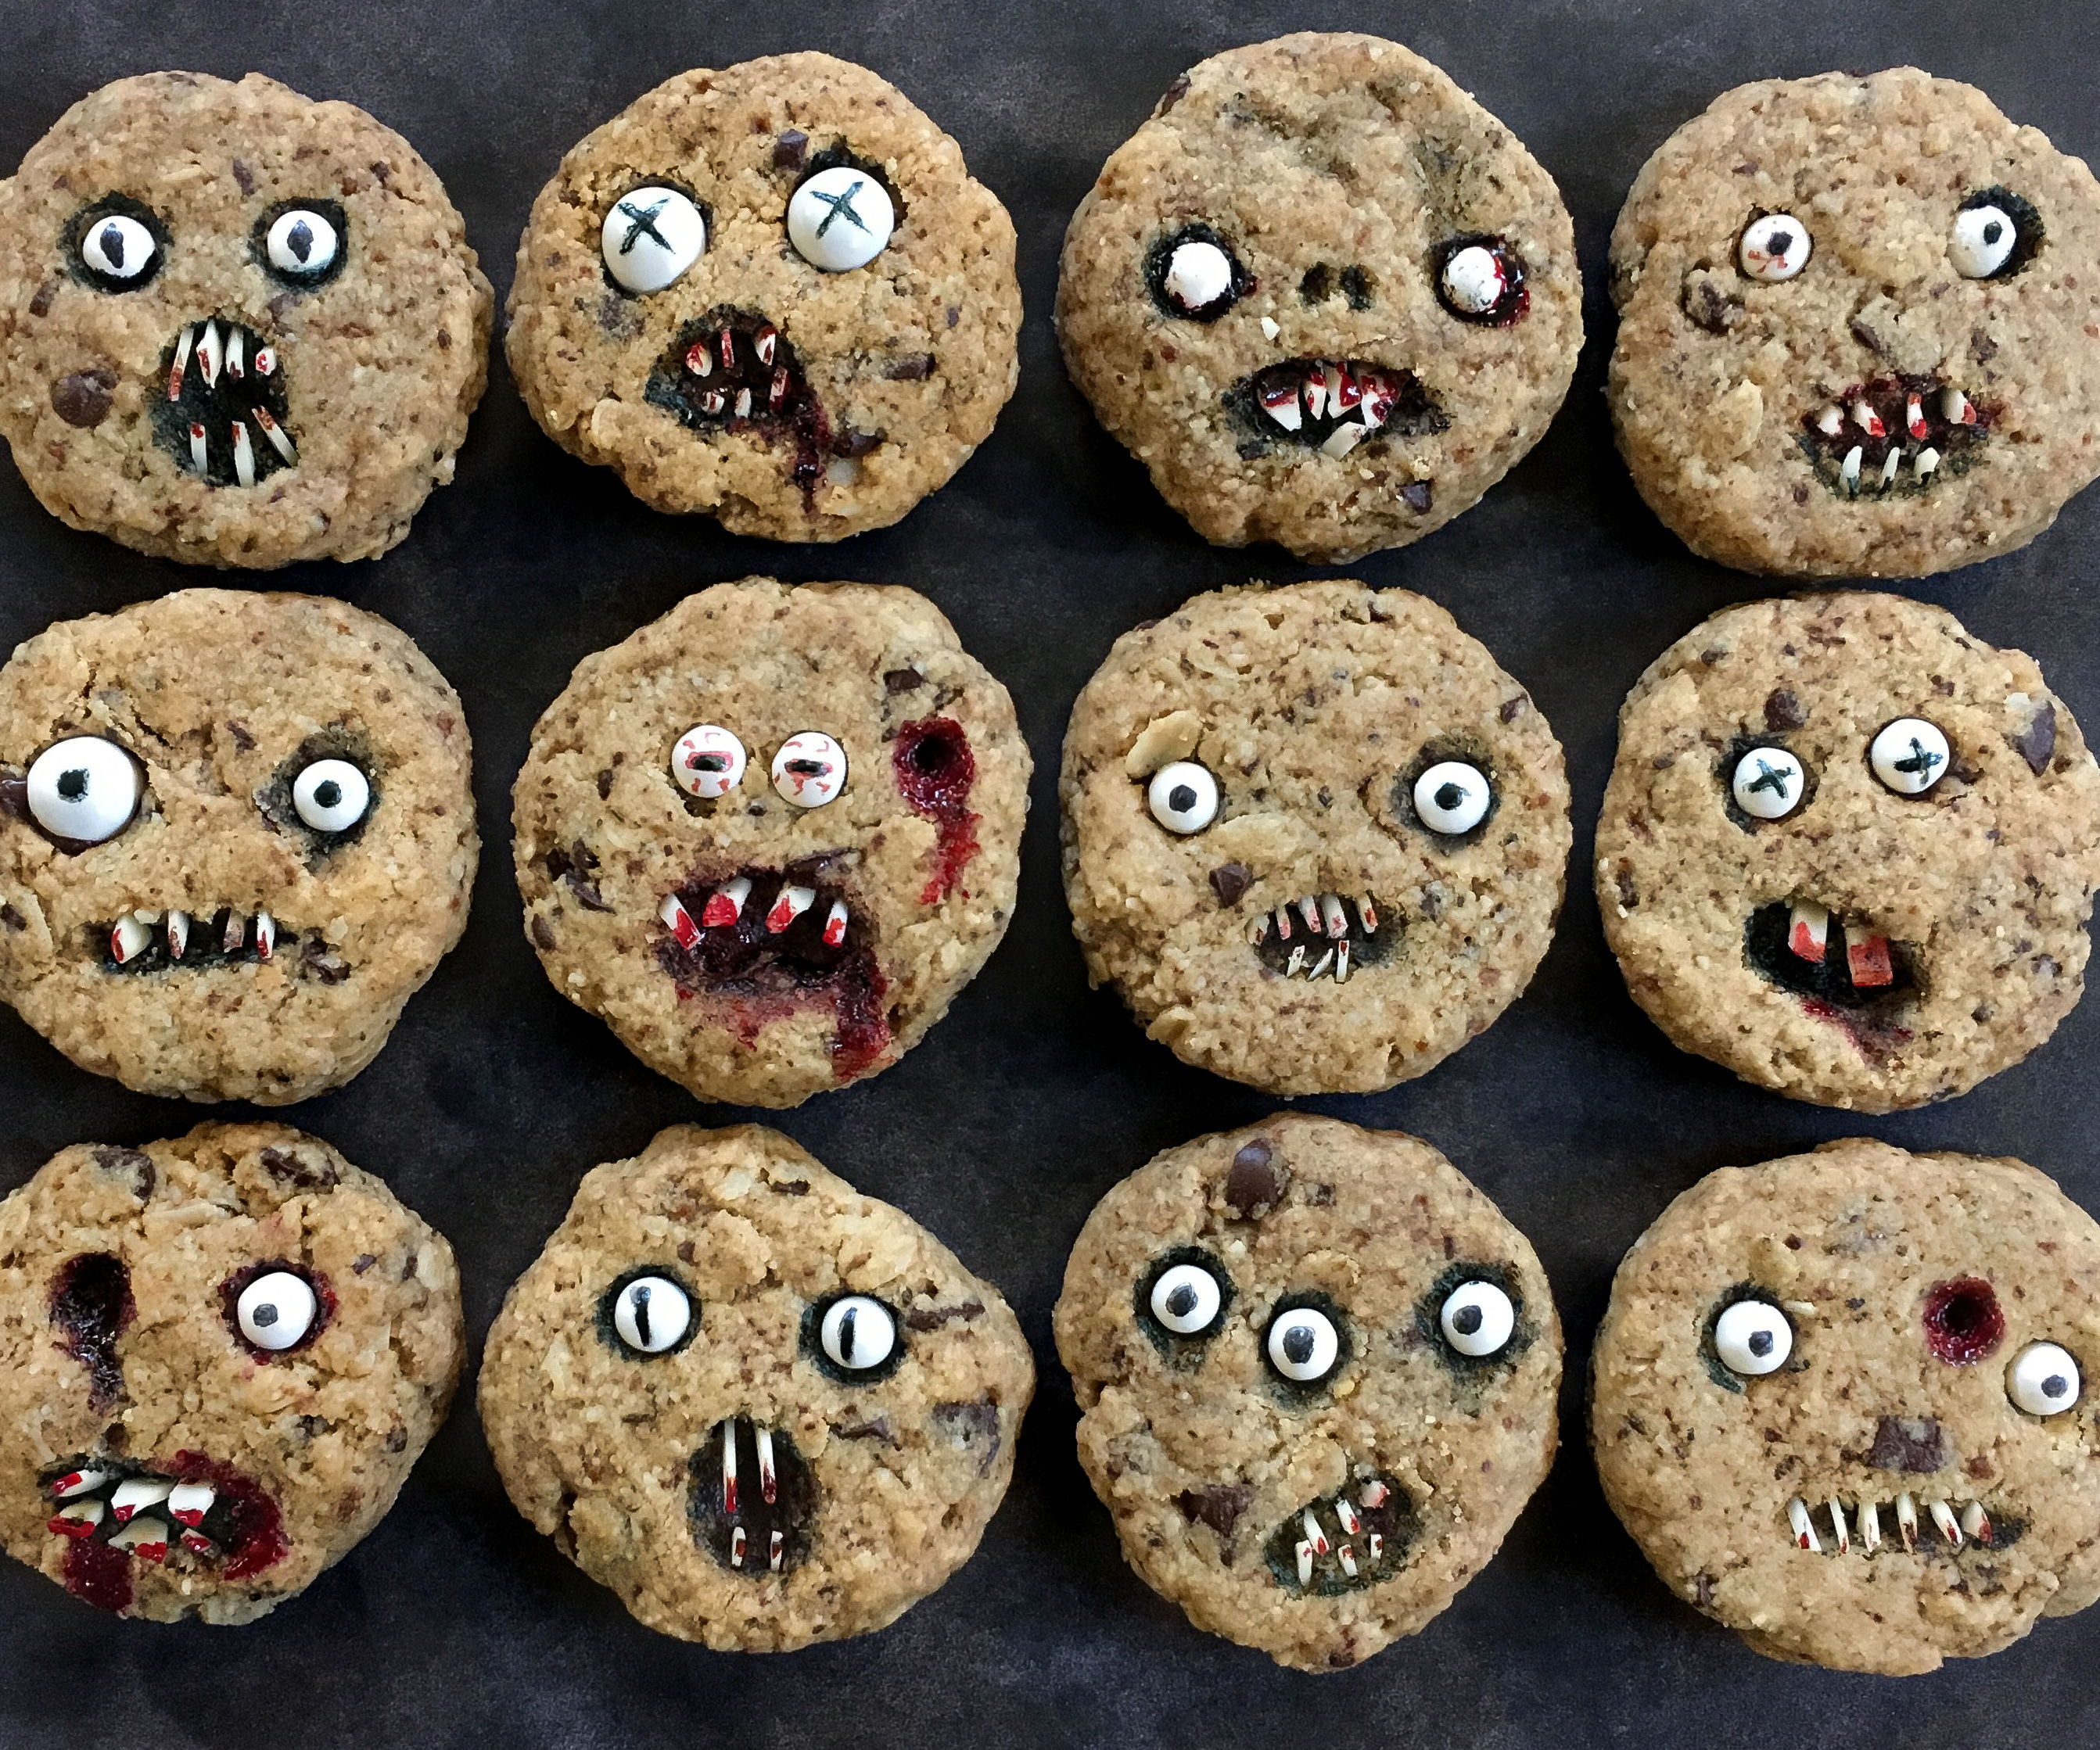 Creepy Chocolate Chip Cookies